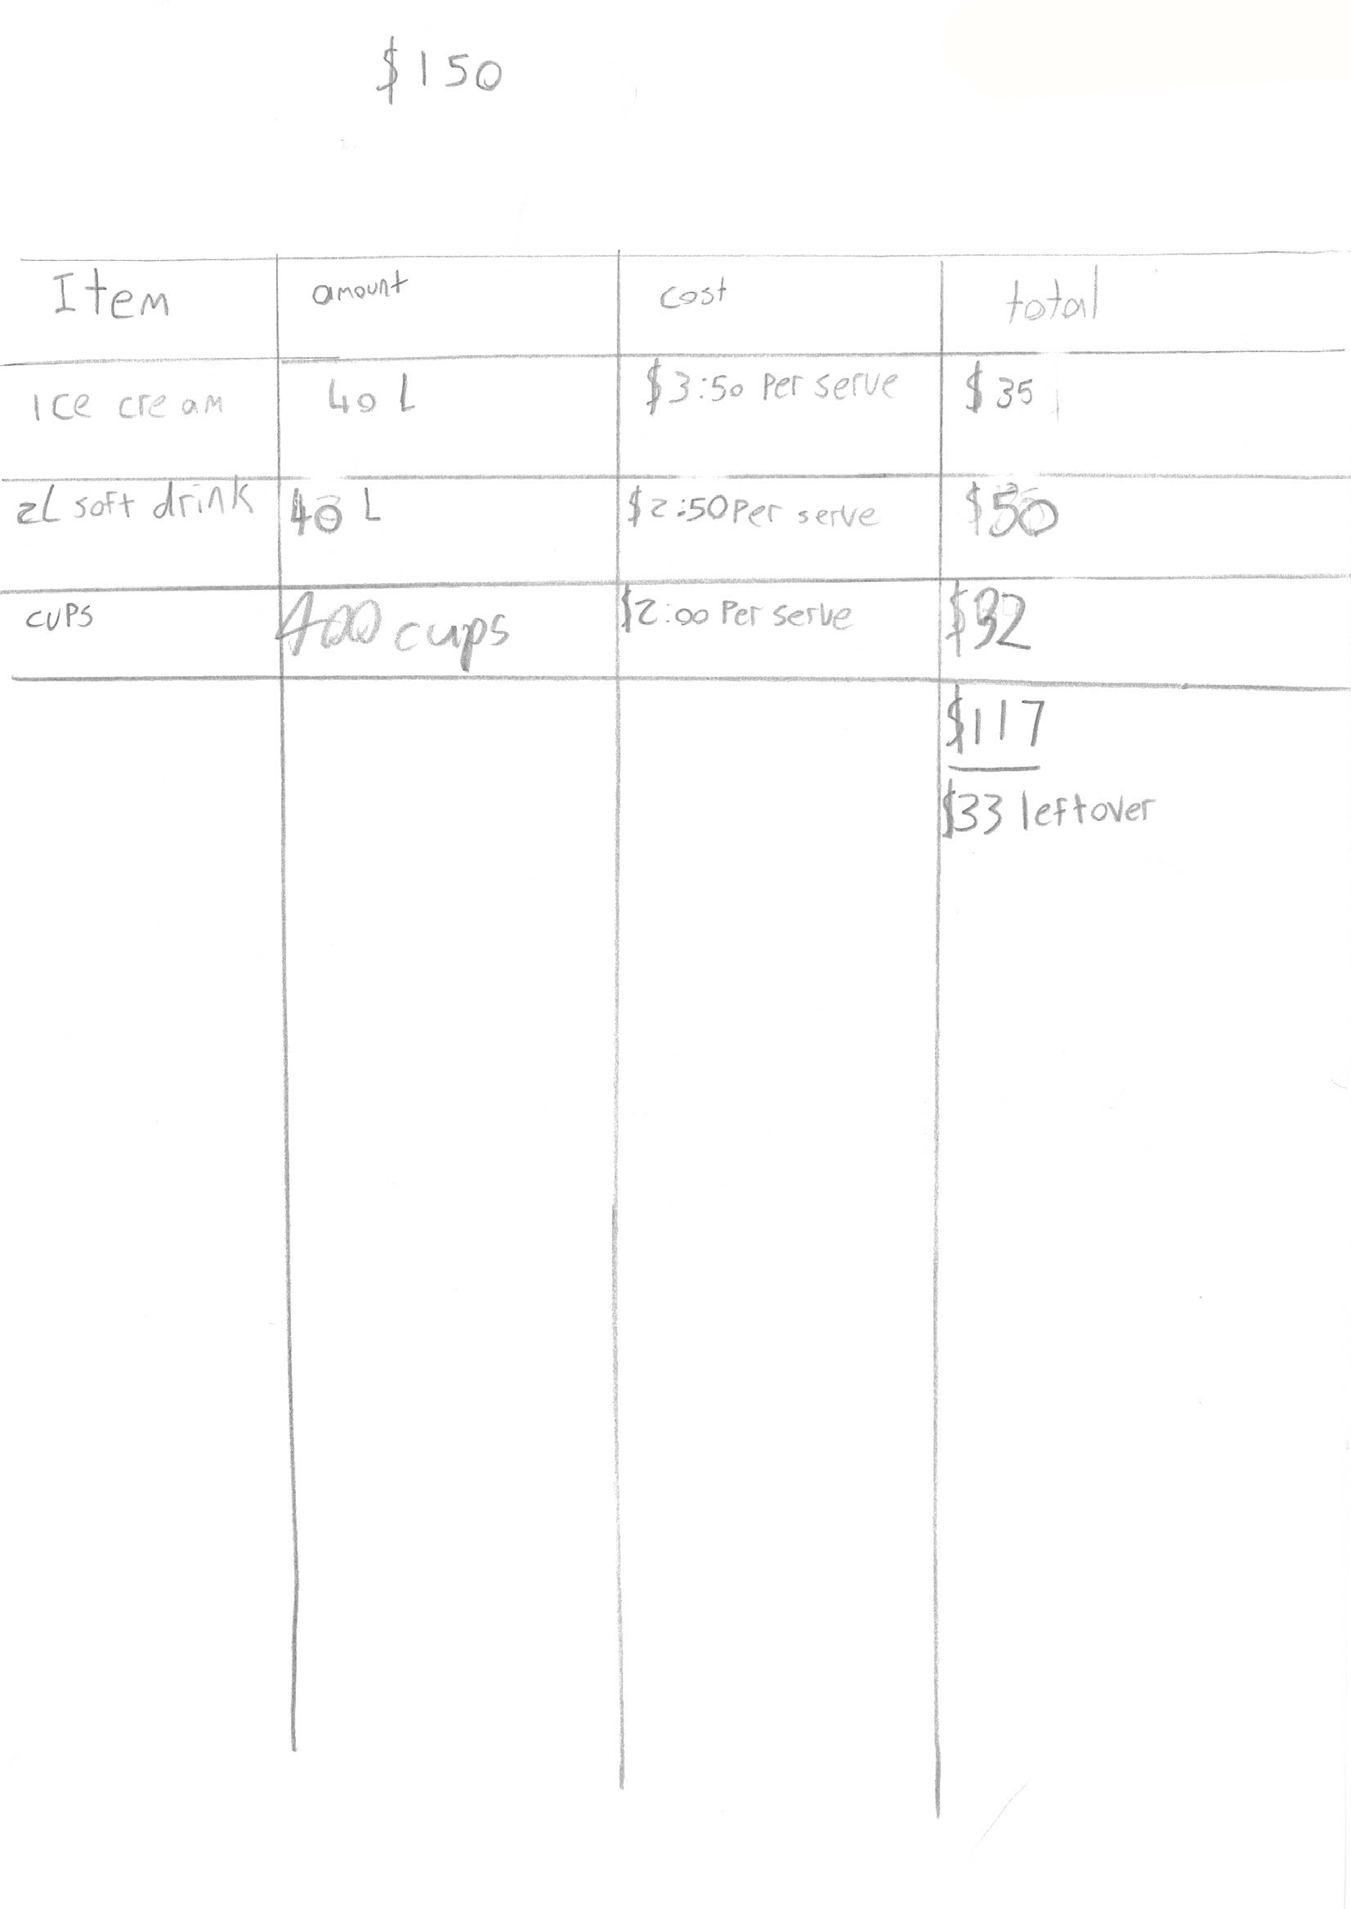 Work sample 13 Number: Spring fair Creates a simple table to record information about a budget. Lists the quantity and cost of each item to be purchased.